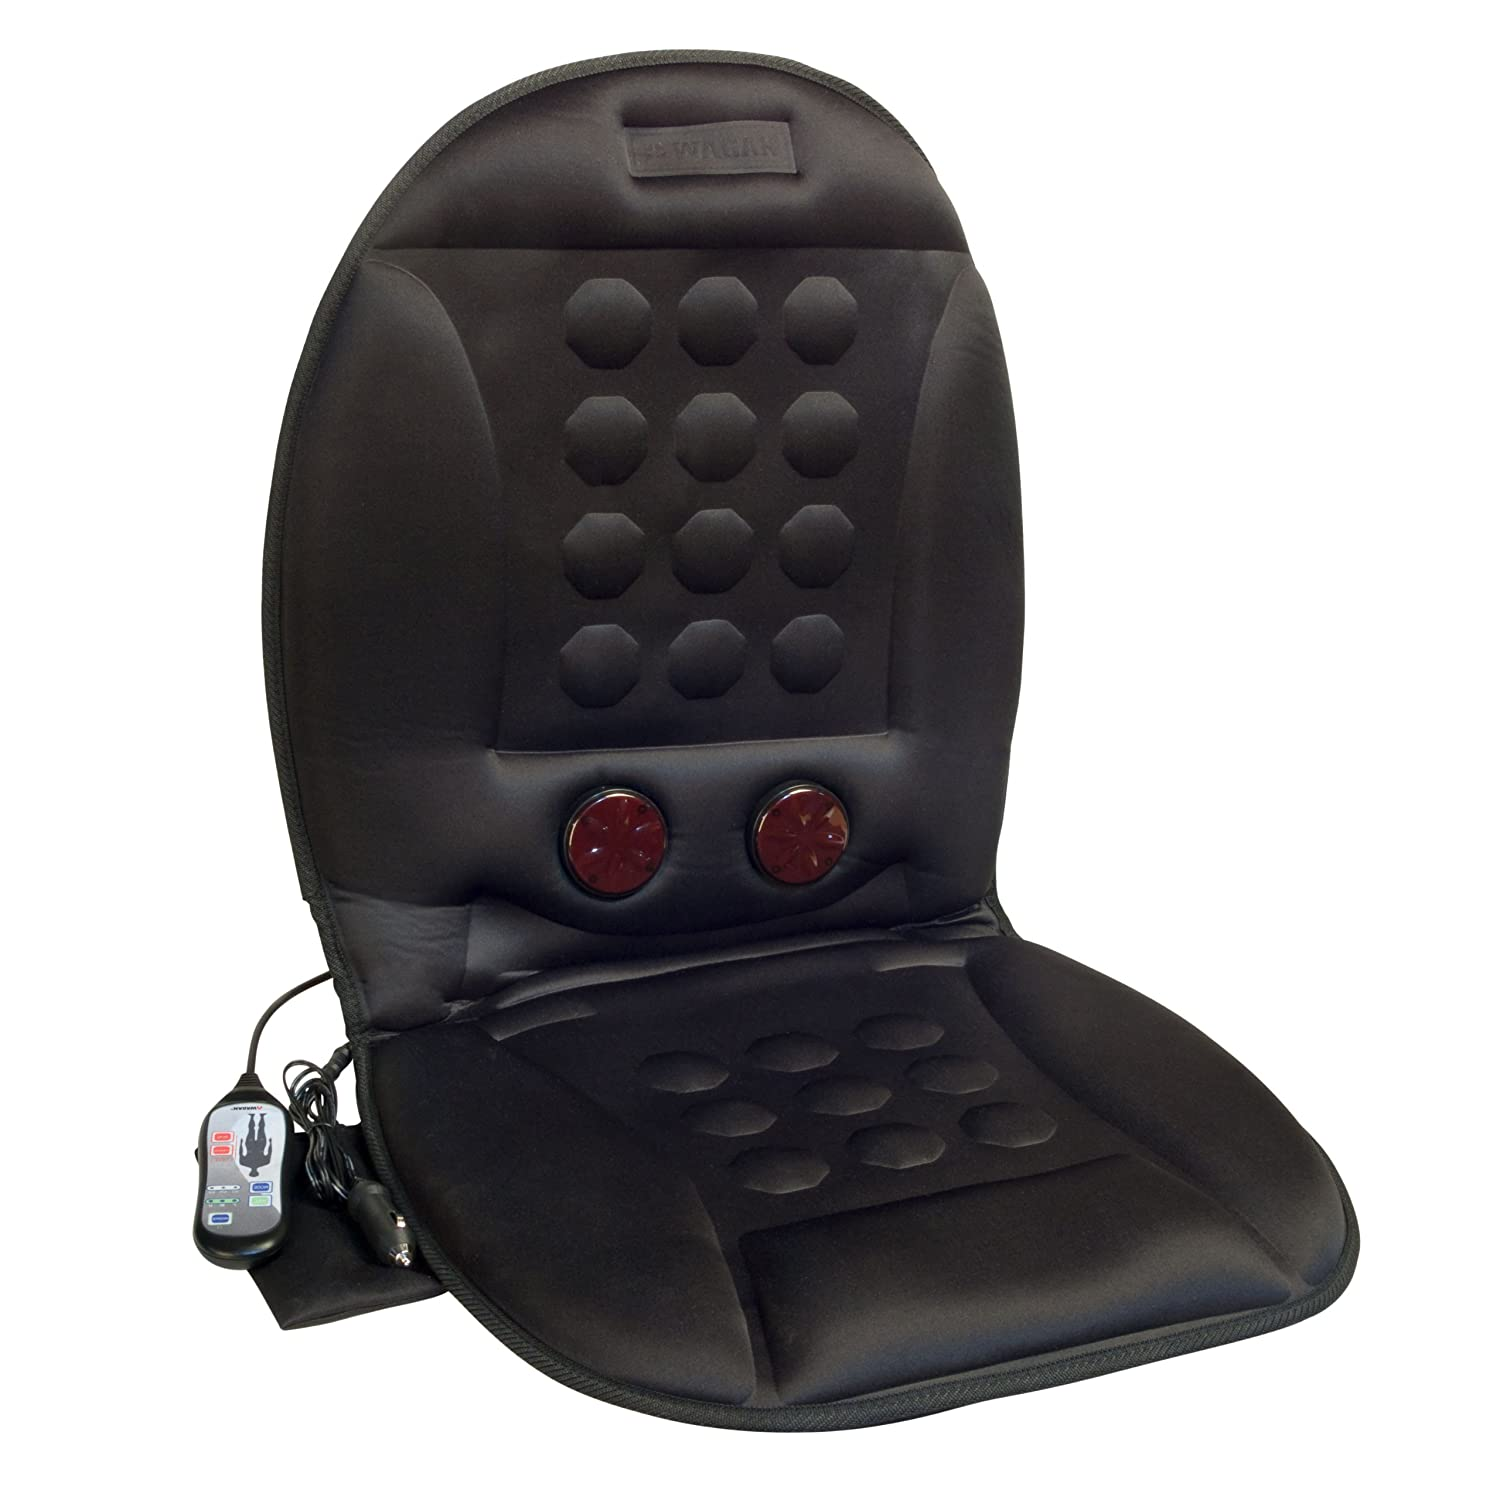 Wagan In9989 12v Infra Heat Massage Magnetic Cushion